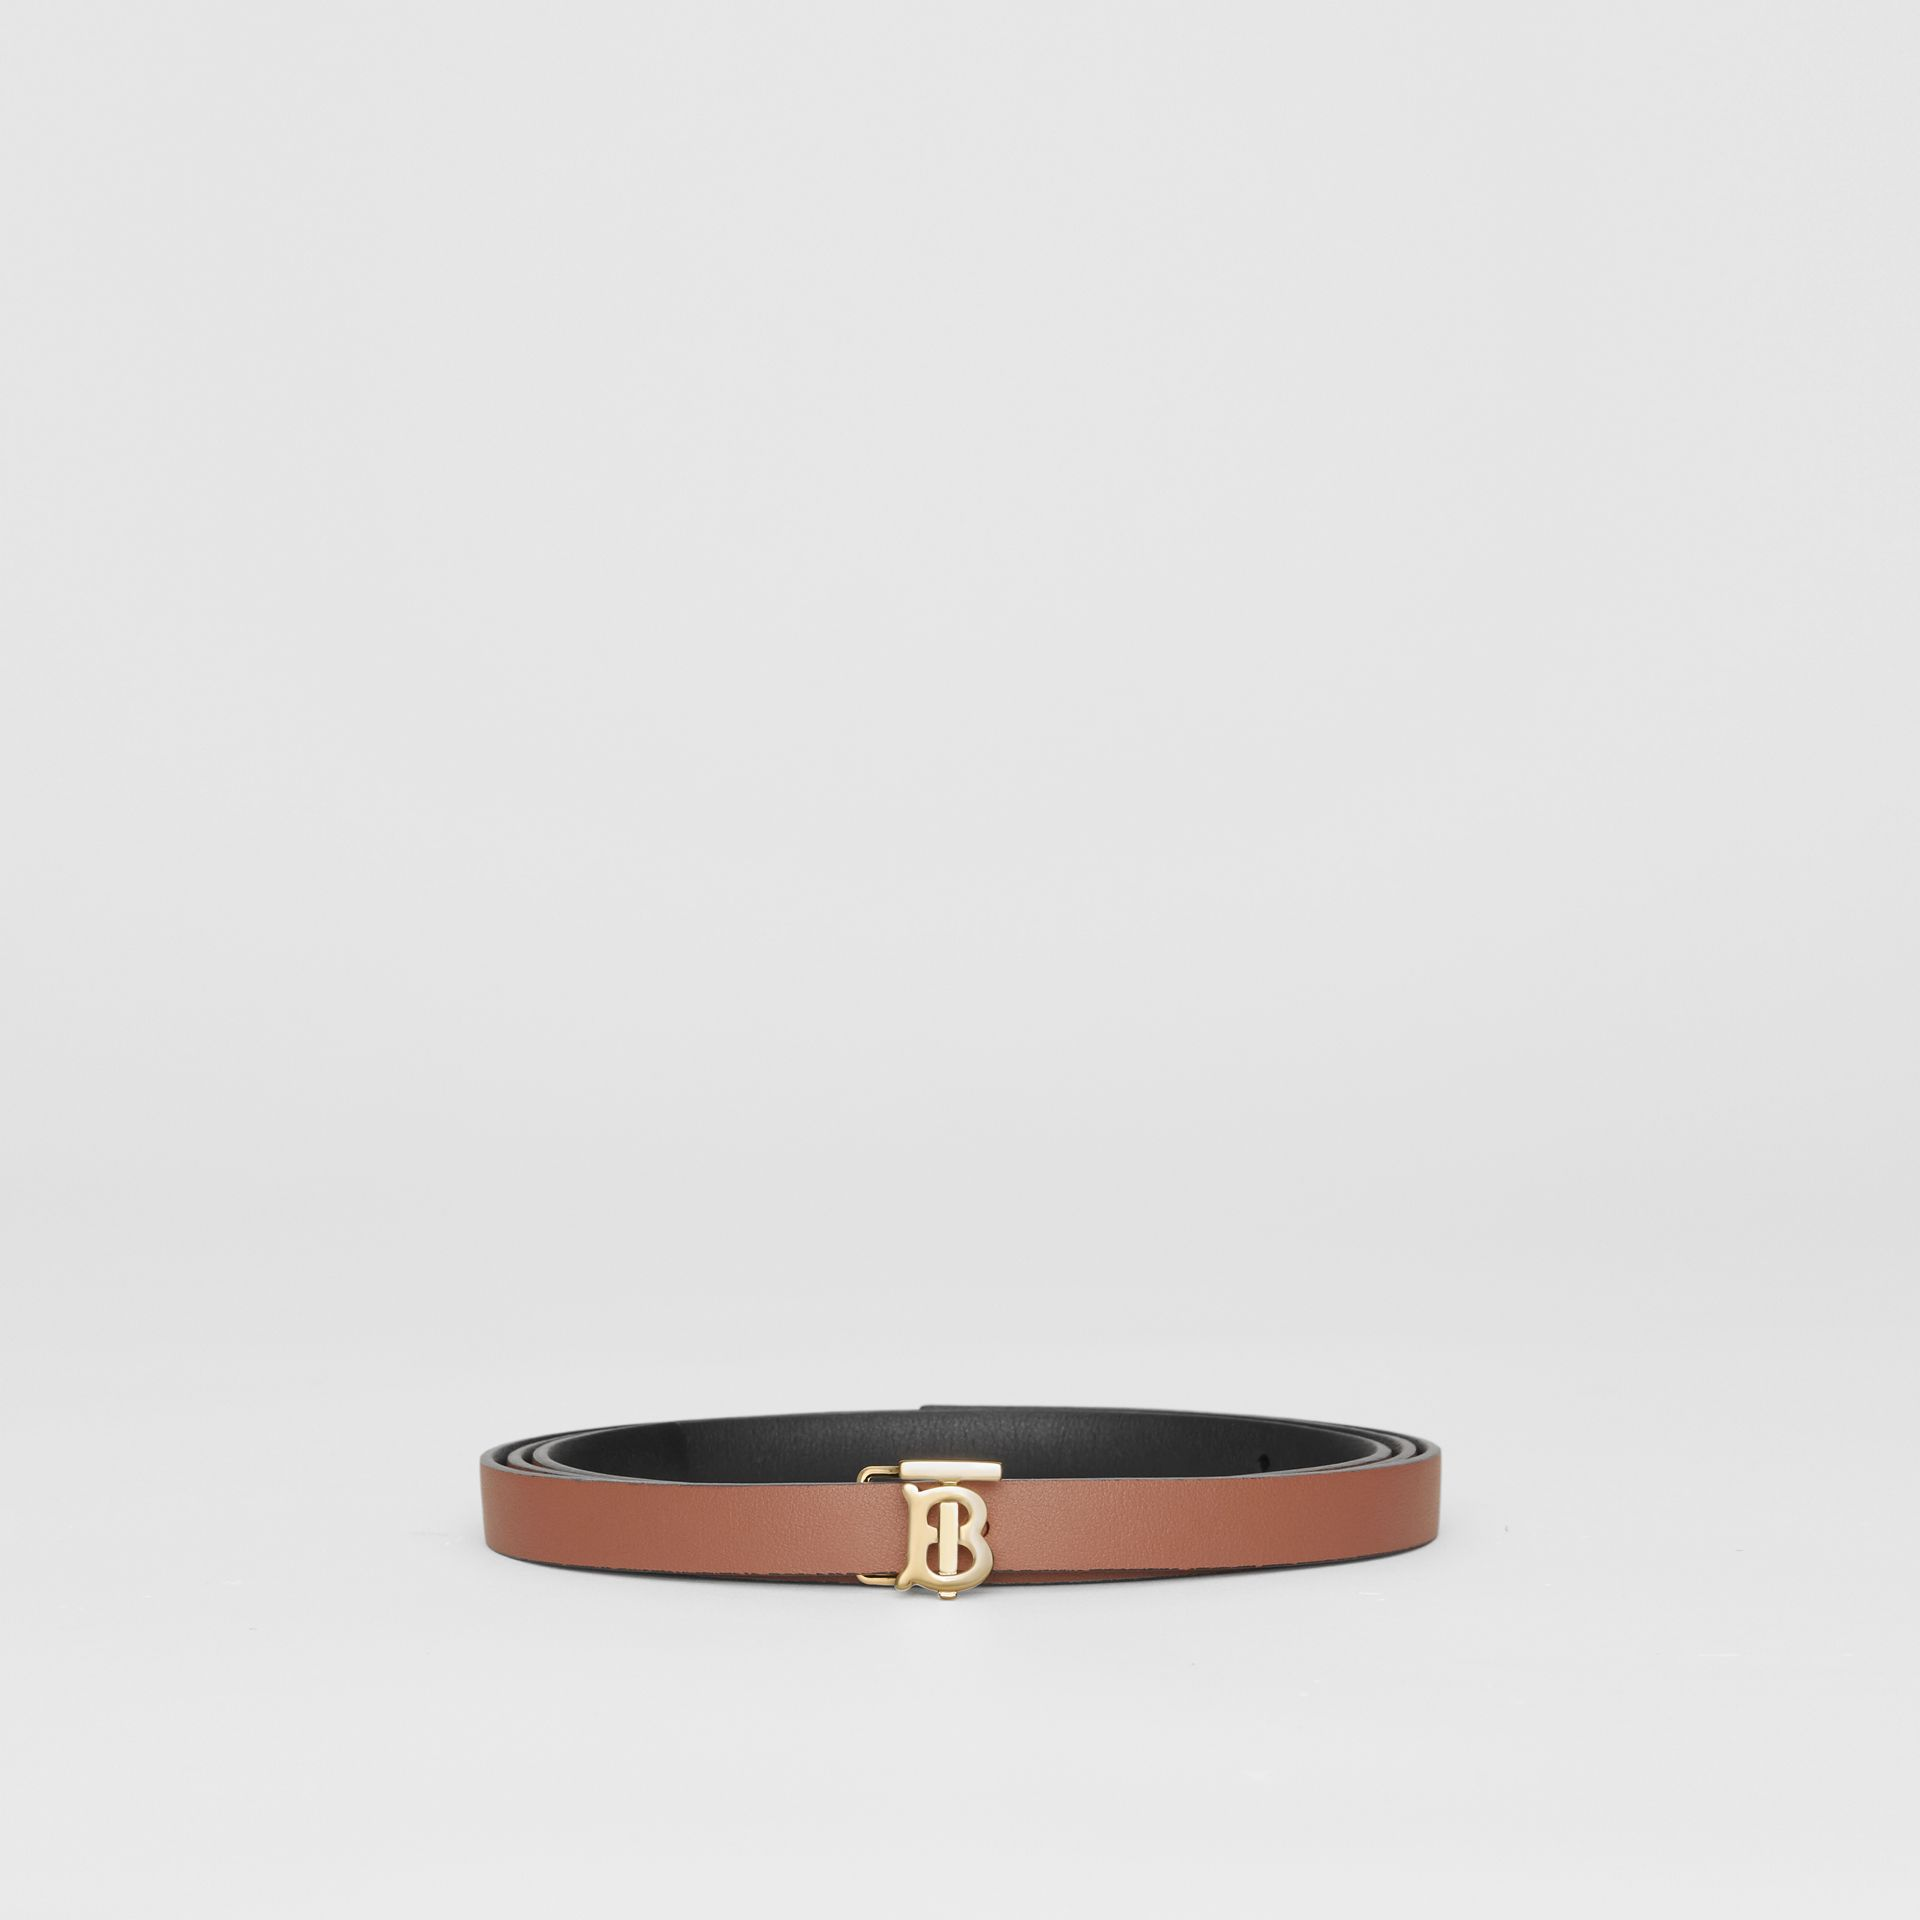 Reversible Monogram Motif Leather Wrap Belt in Black/malt Brown - Women | Burberry - gallery image 6